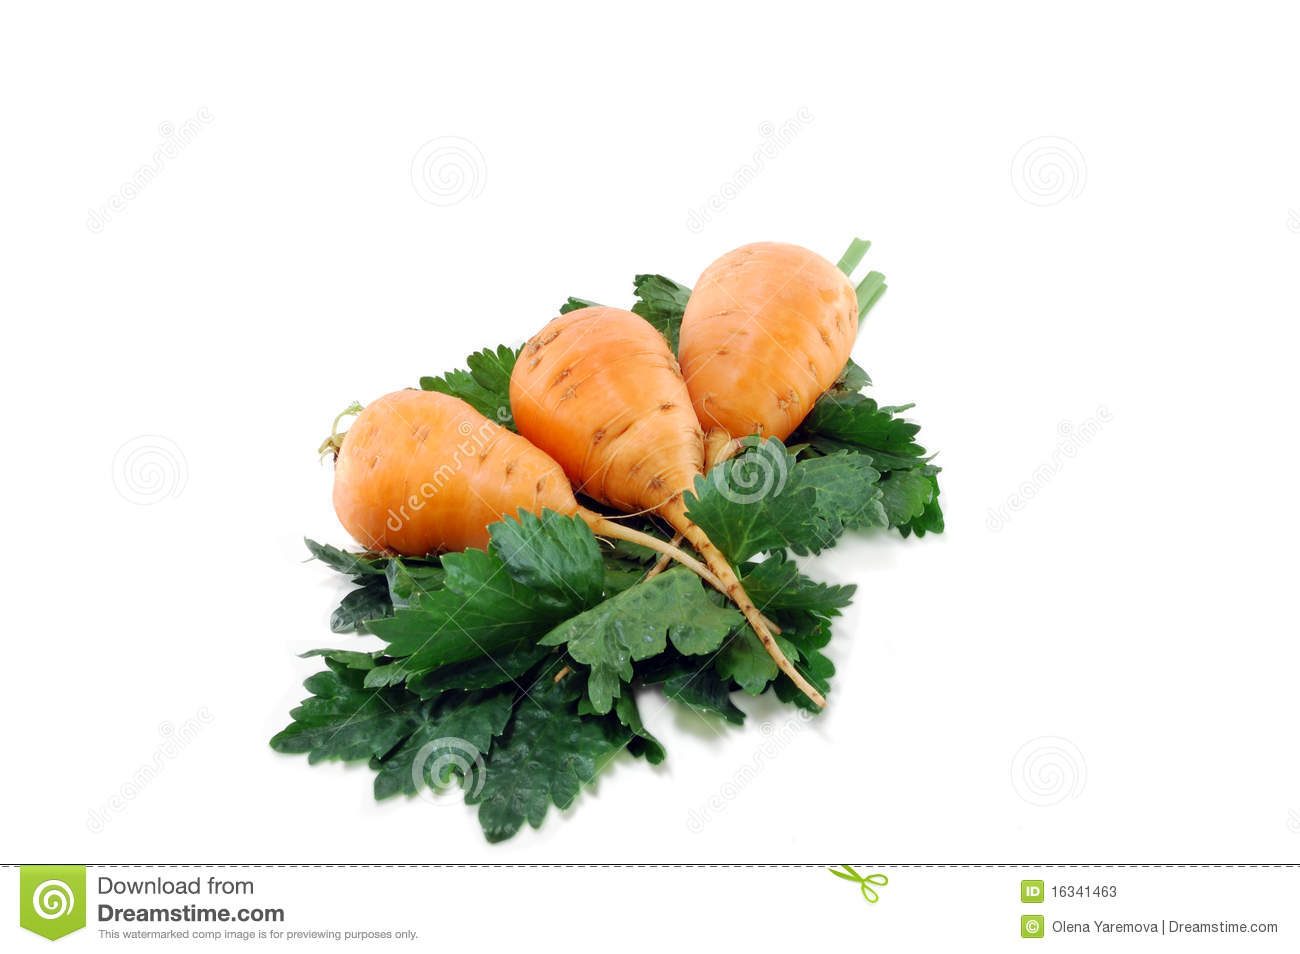 Carrots And Celery Greens Stock Photos   Image  16341463